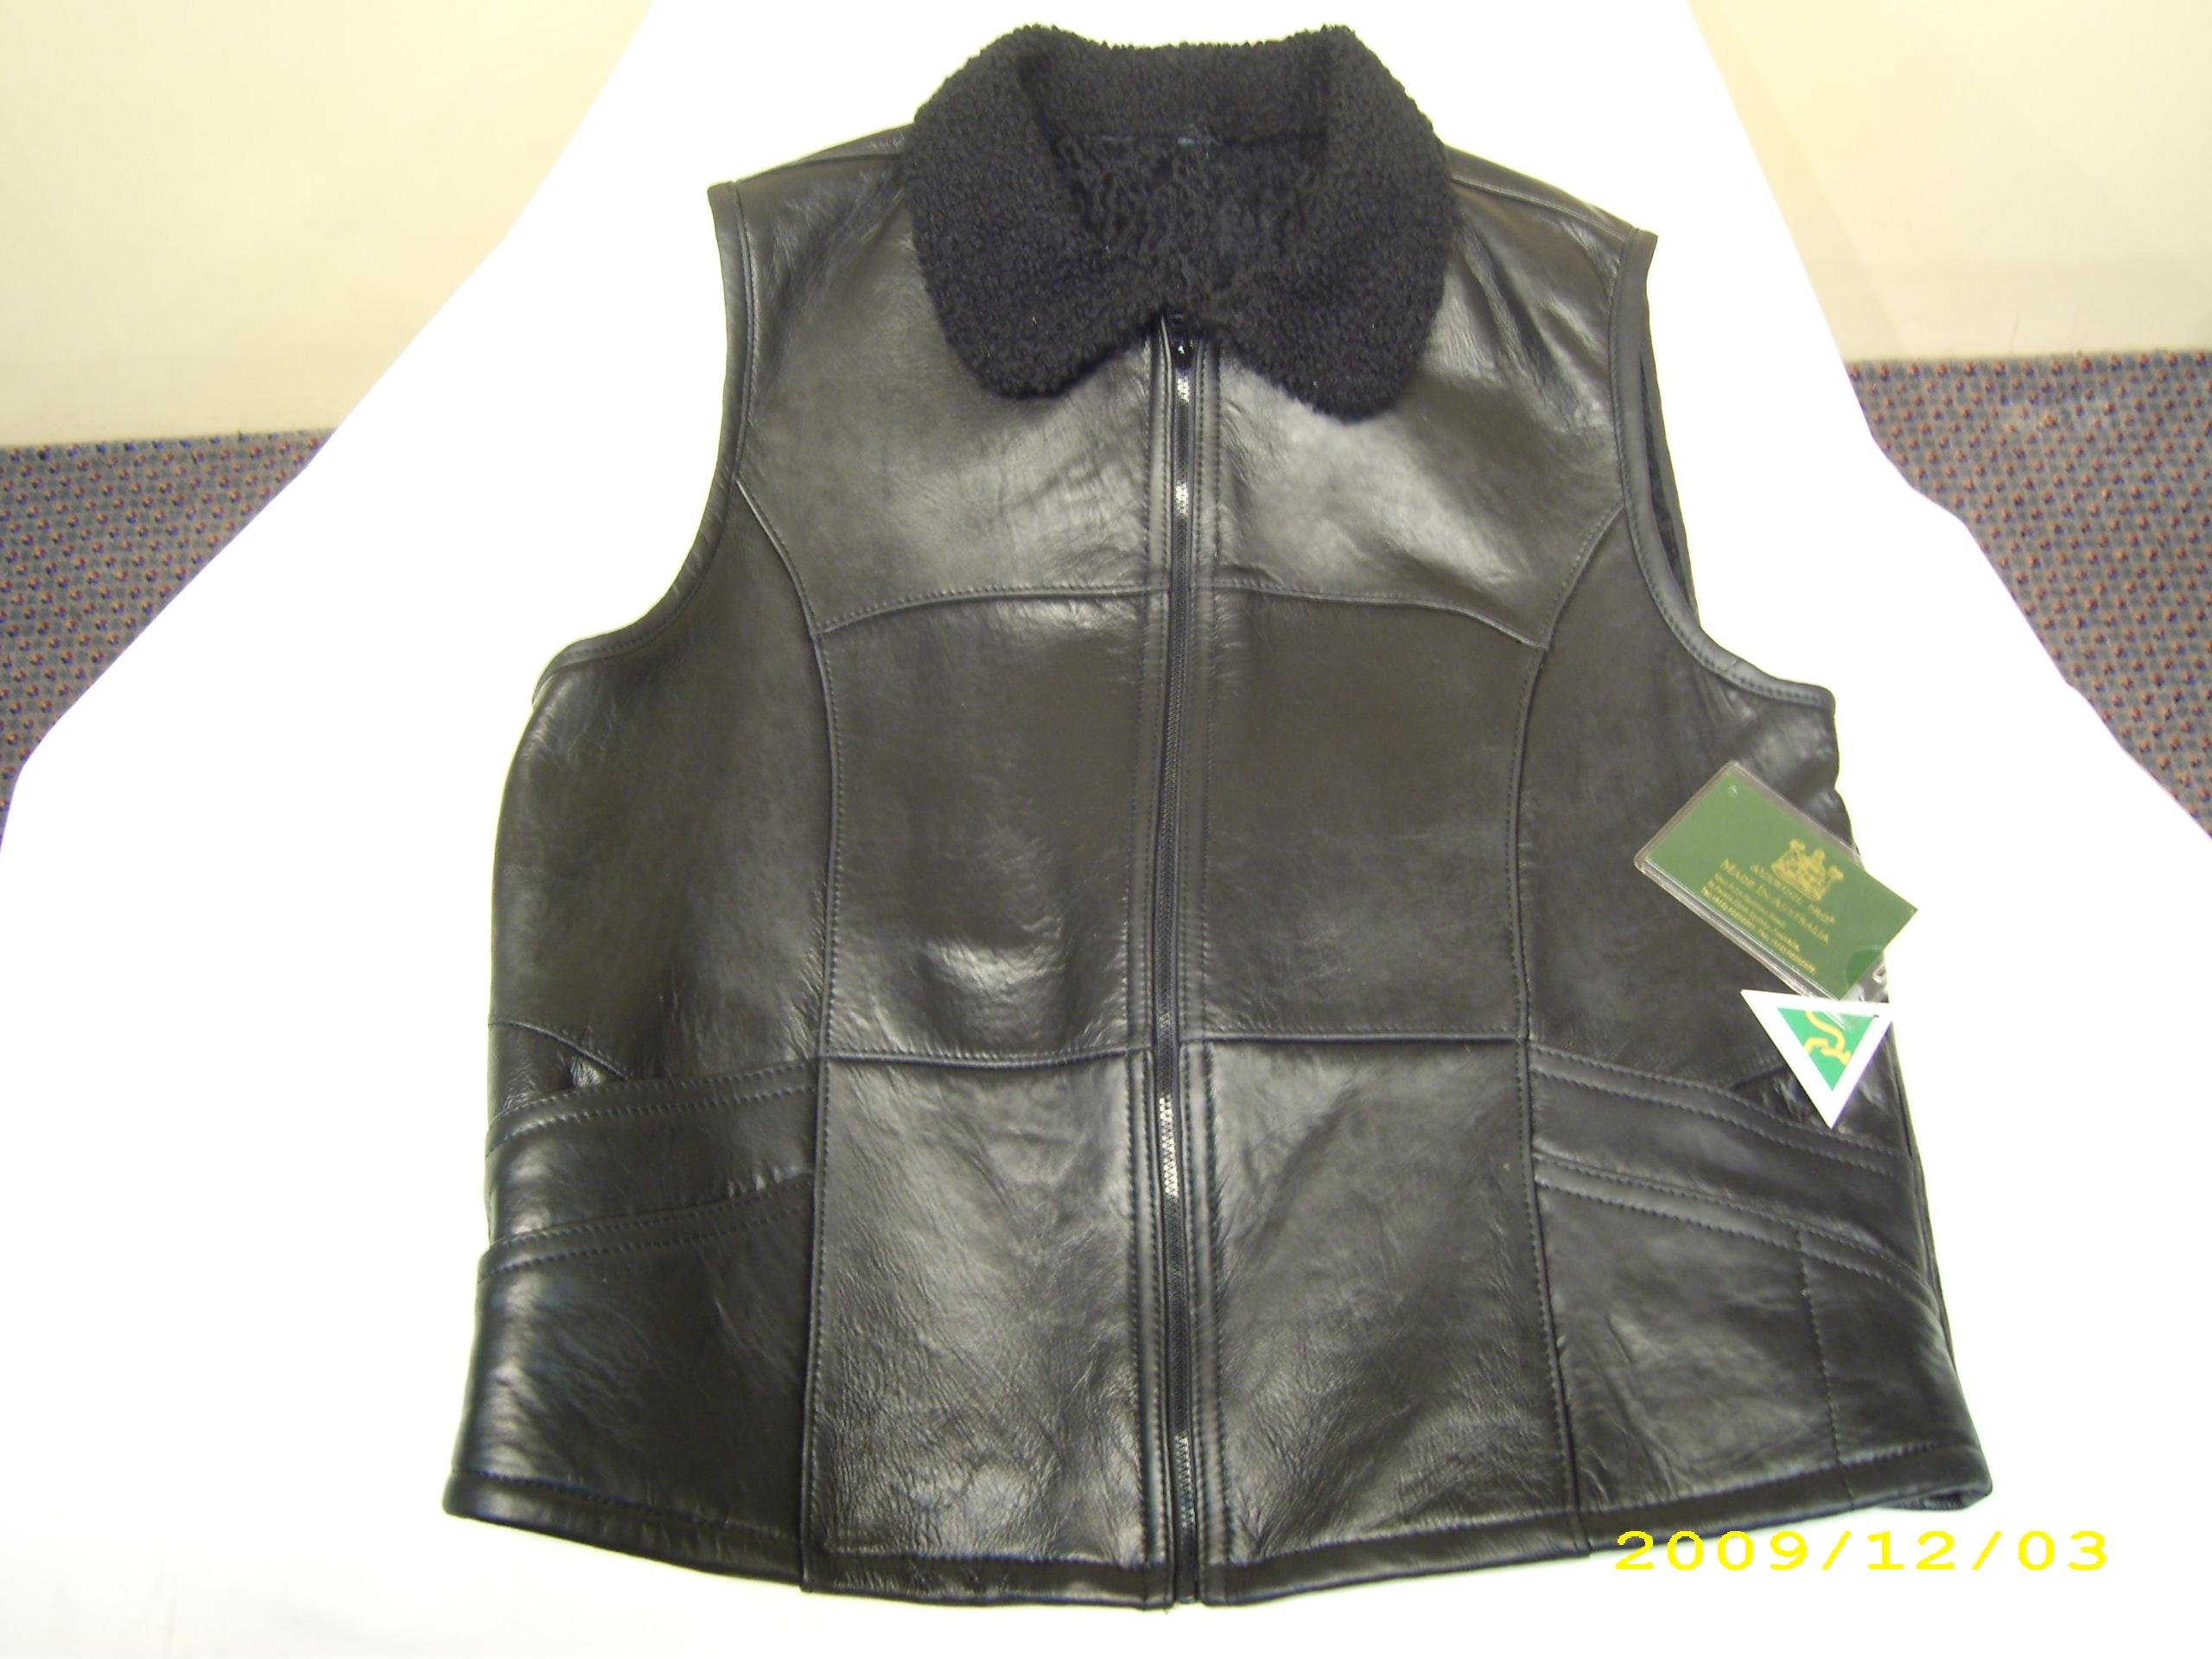 Auswool Pro Mens Lambskin Vests and Jackets MV-7